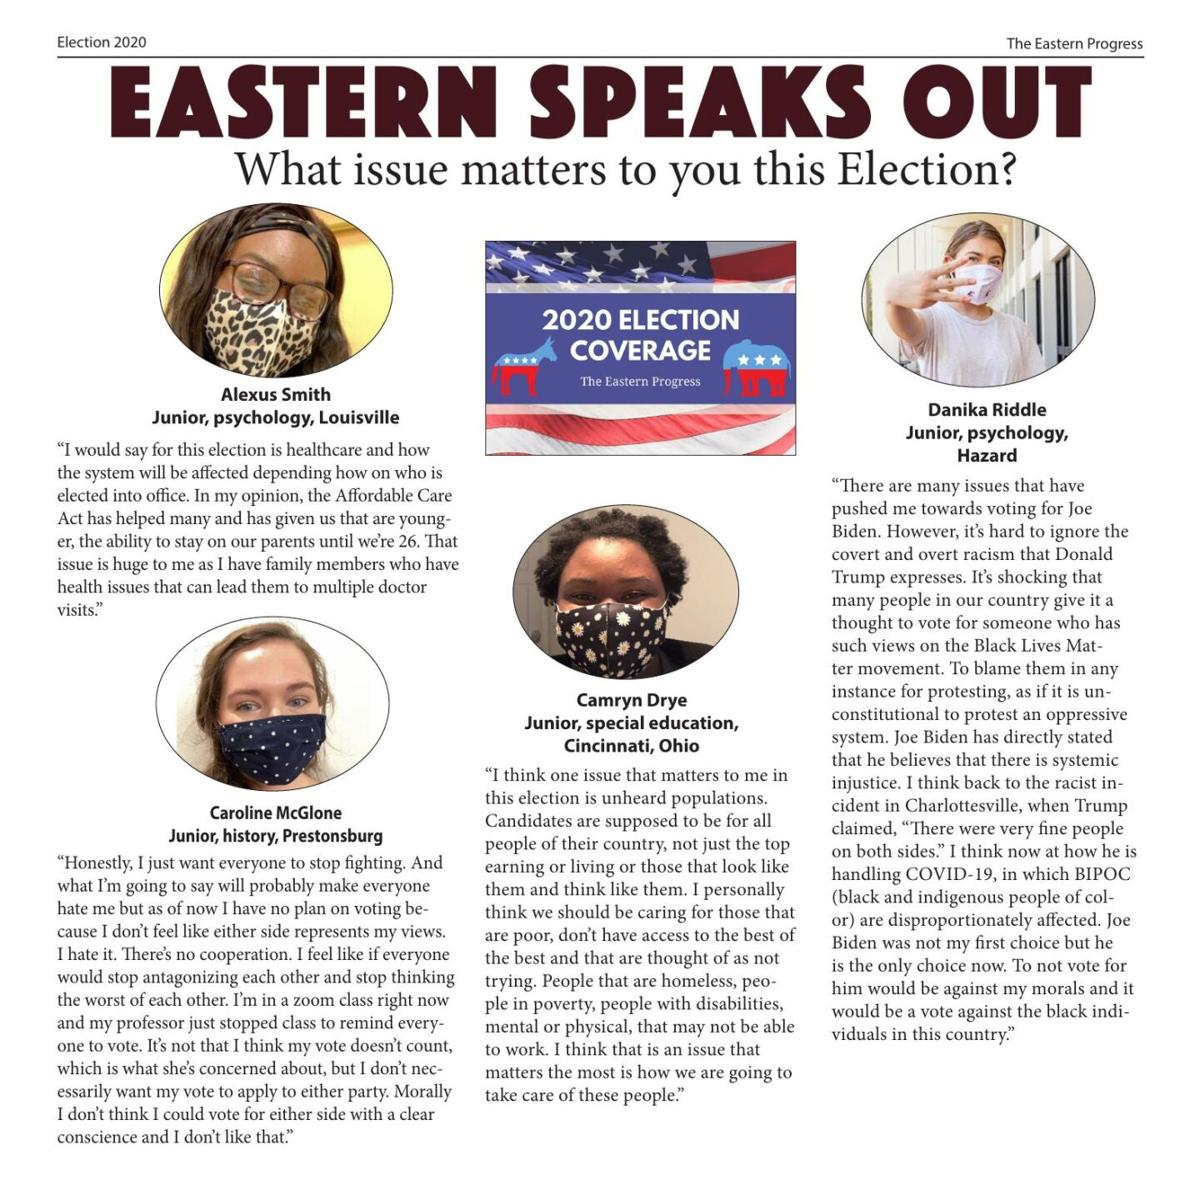 Eastern Speaks Out: What issue matters to you this Election?